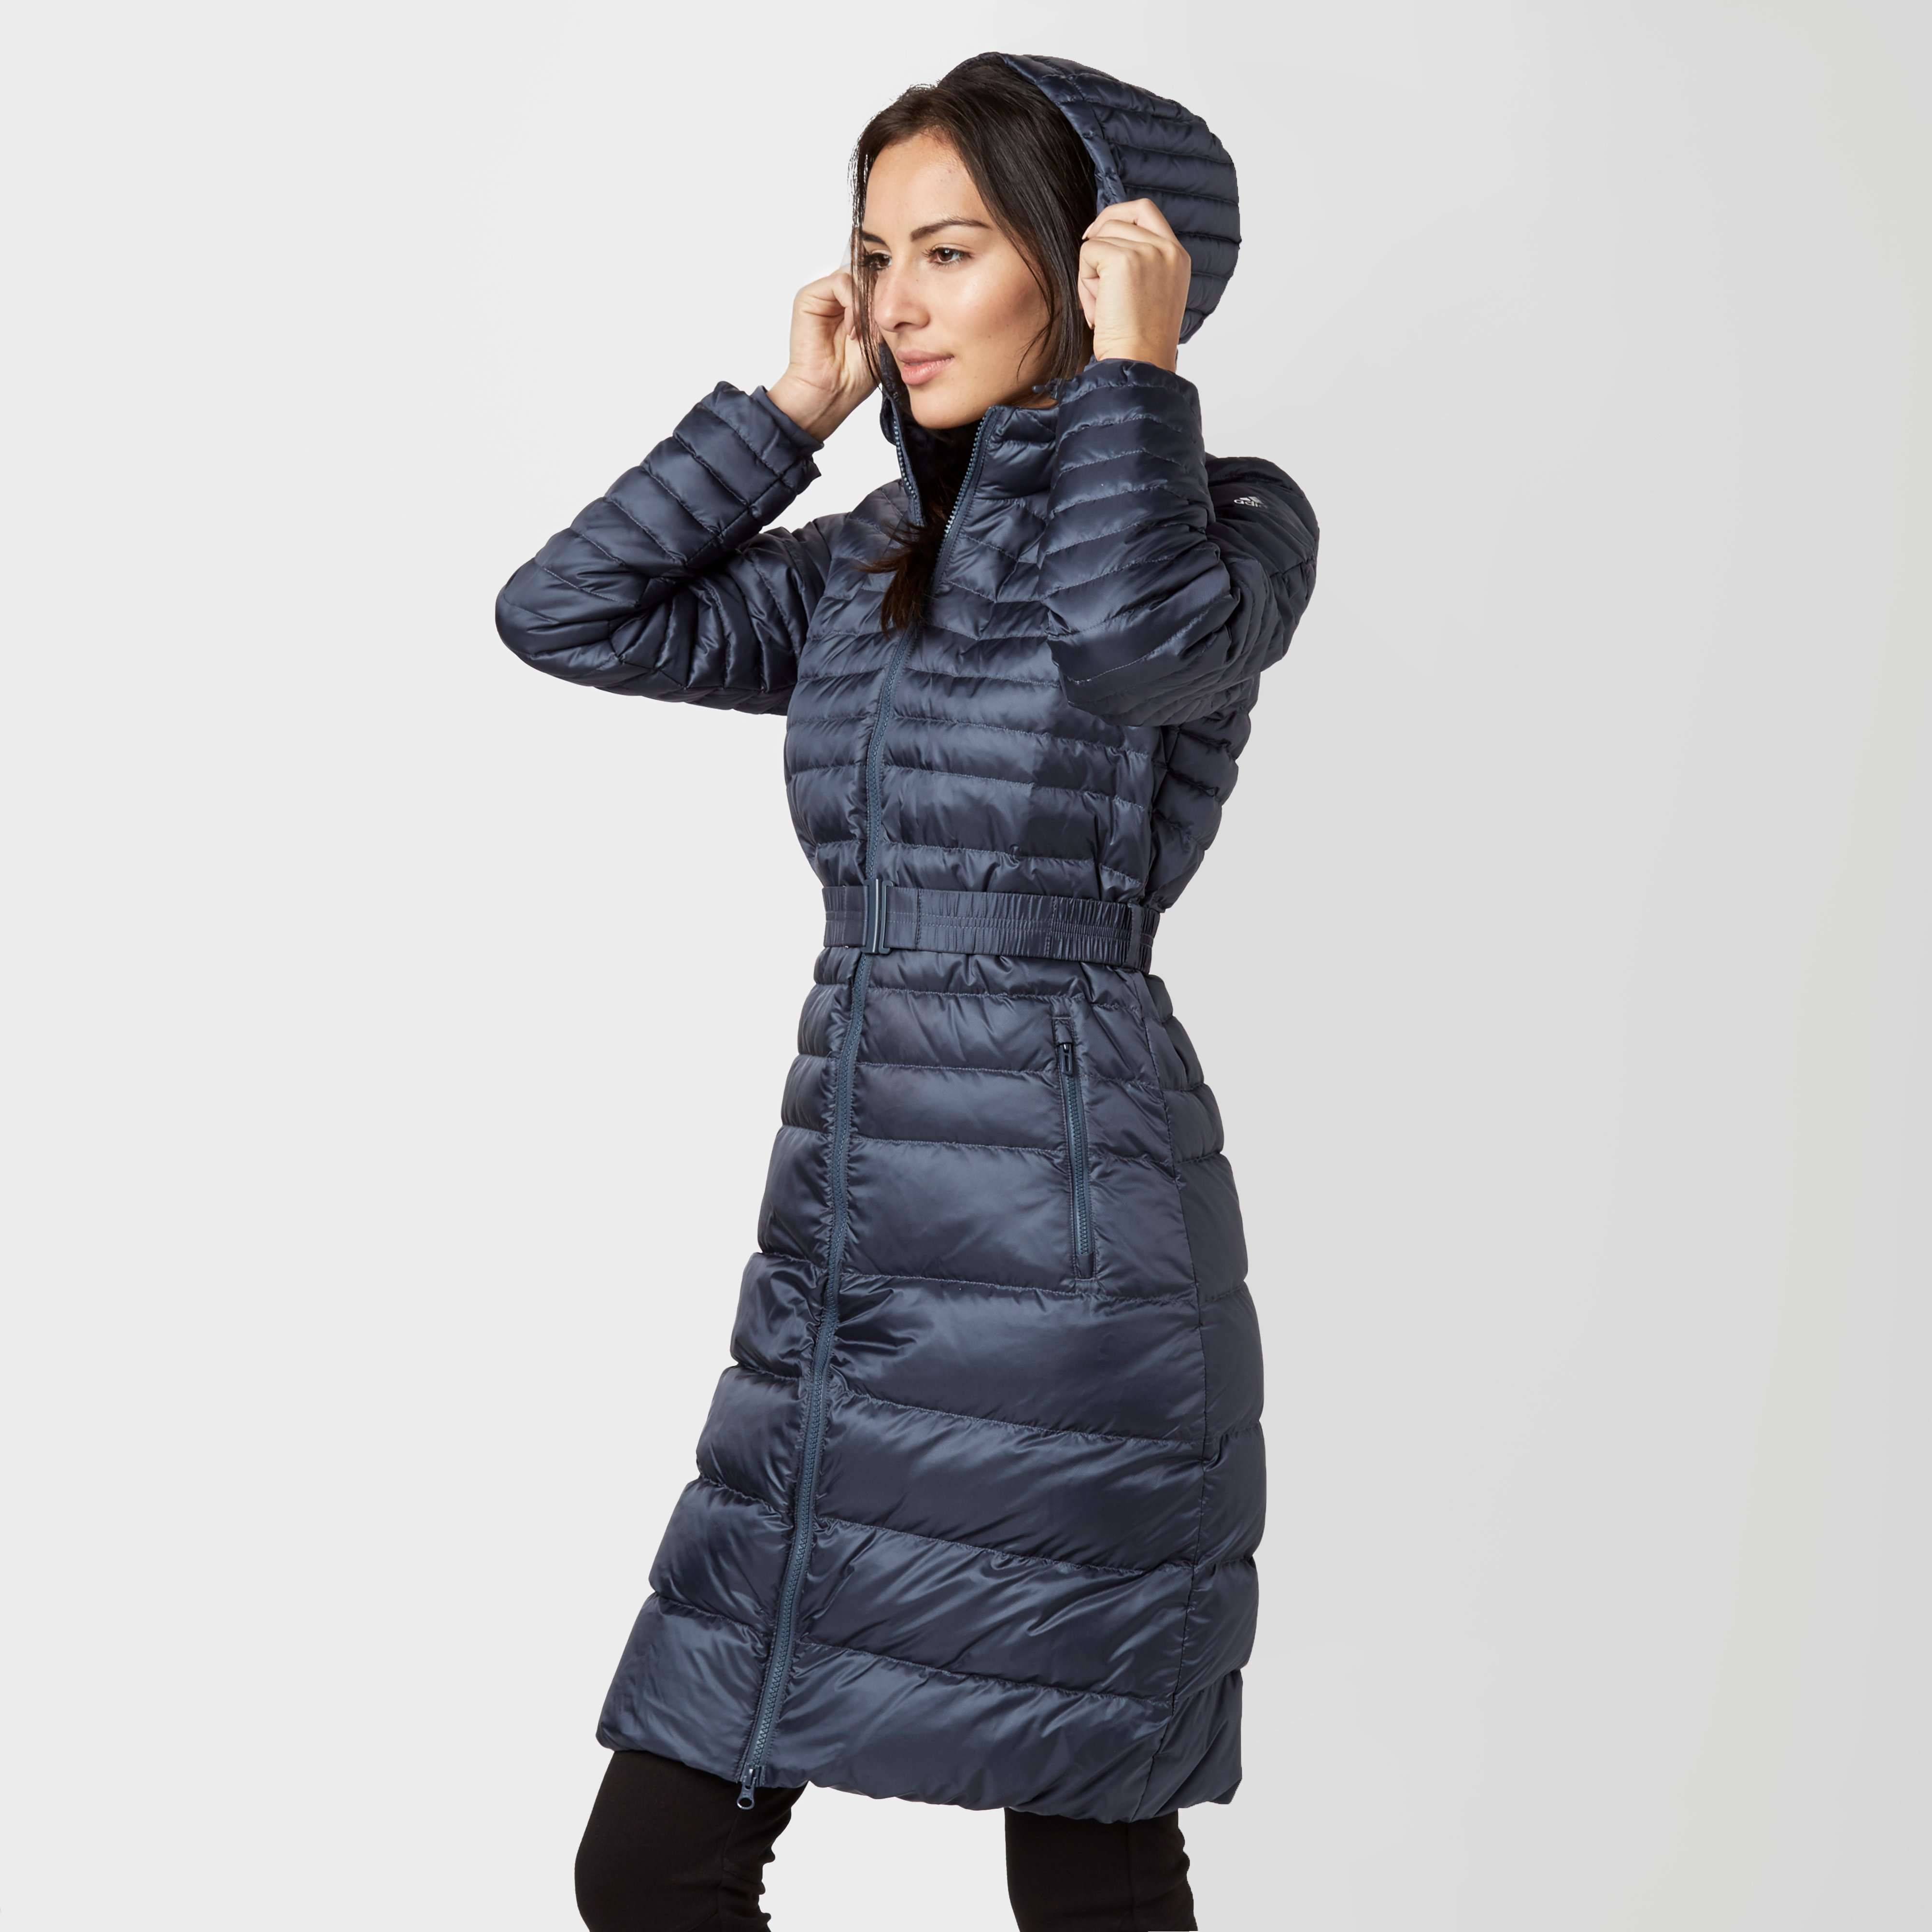 ADIDAS Women's Timeless Down Jacket